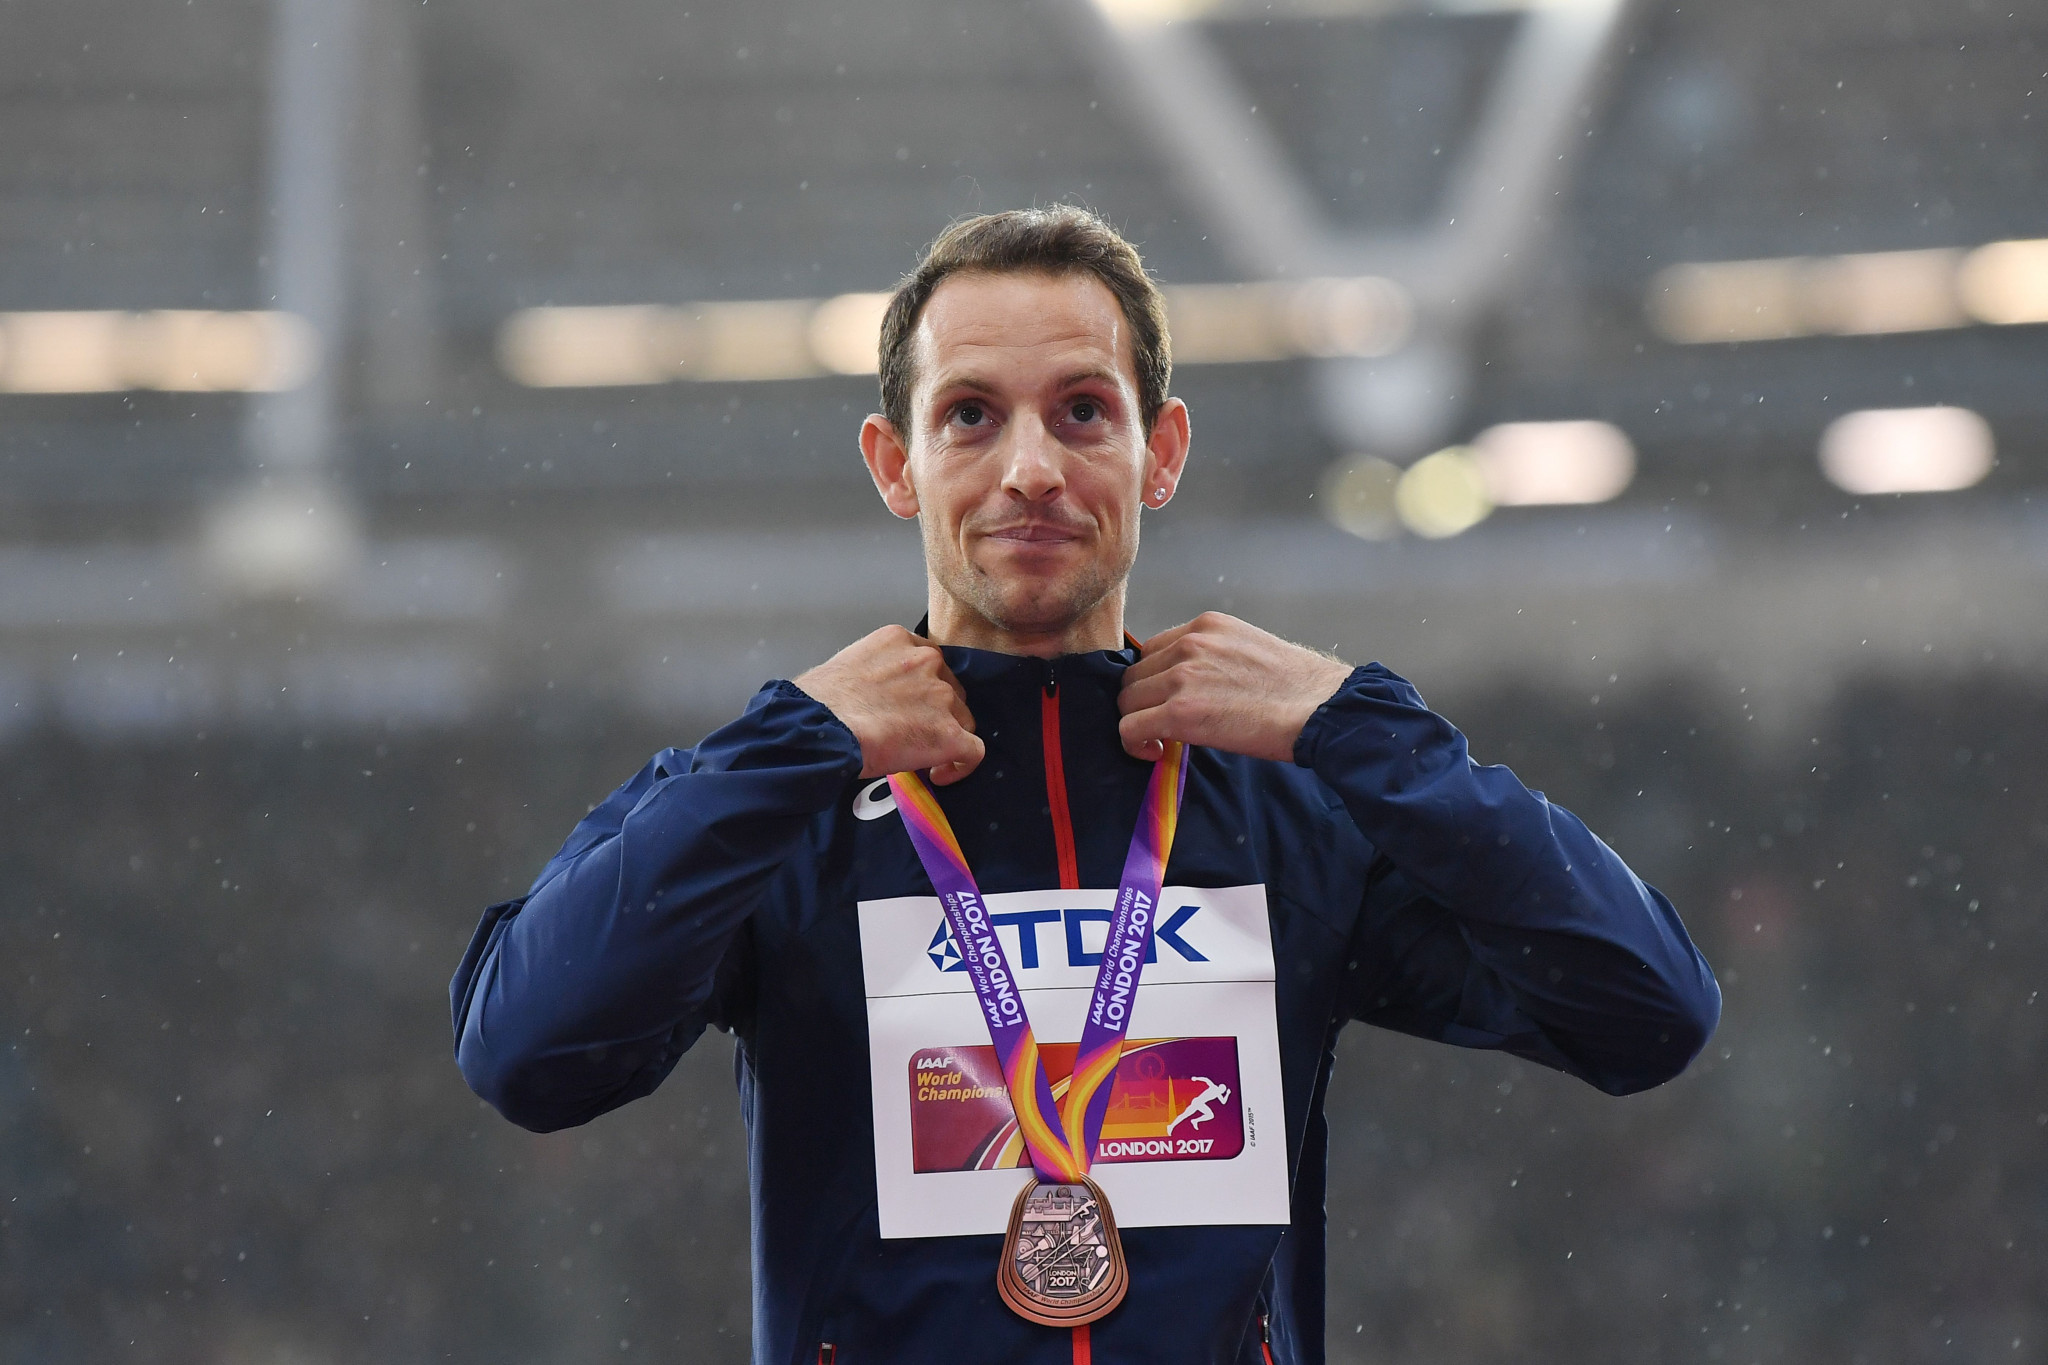 Lavillenie, Guyart and Le Fur among top athletes to help launch Paris 2024 project